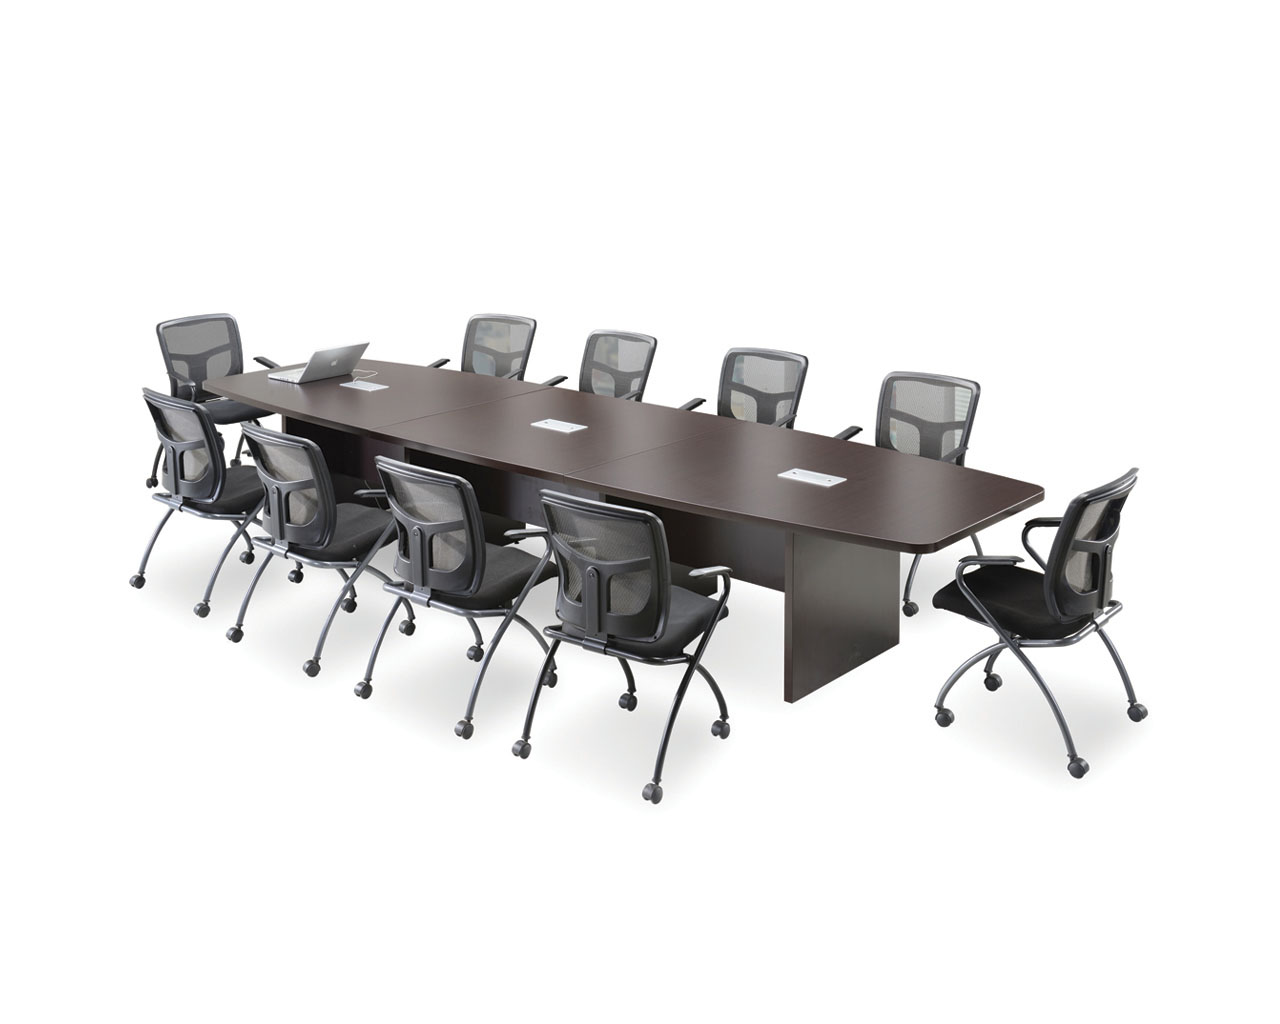 conference tables and chairs white leather swivel office chair classic boat shaped table style